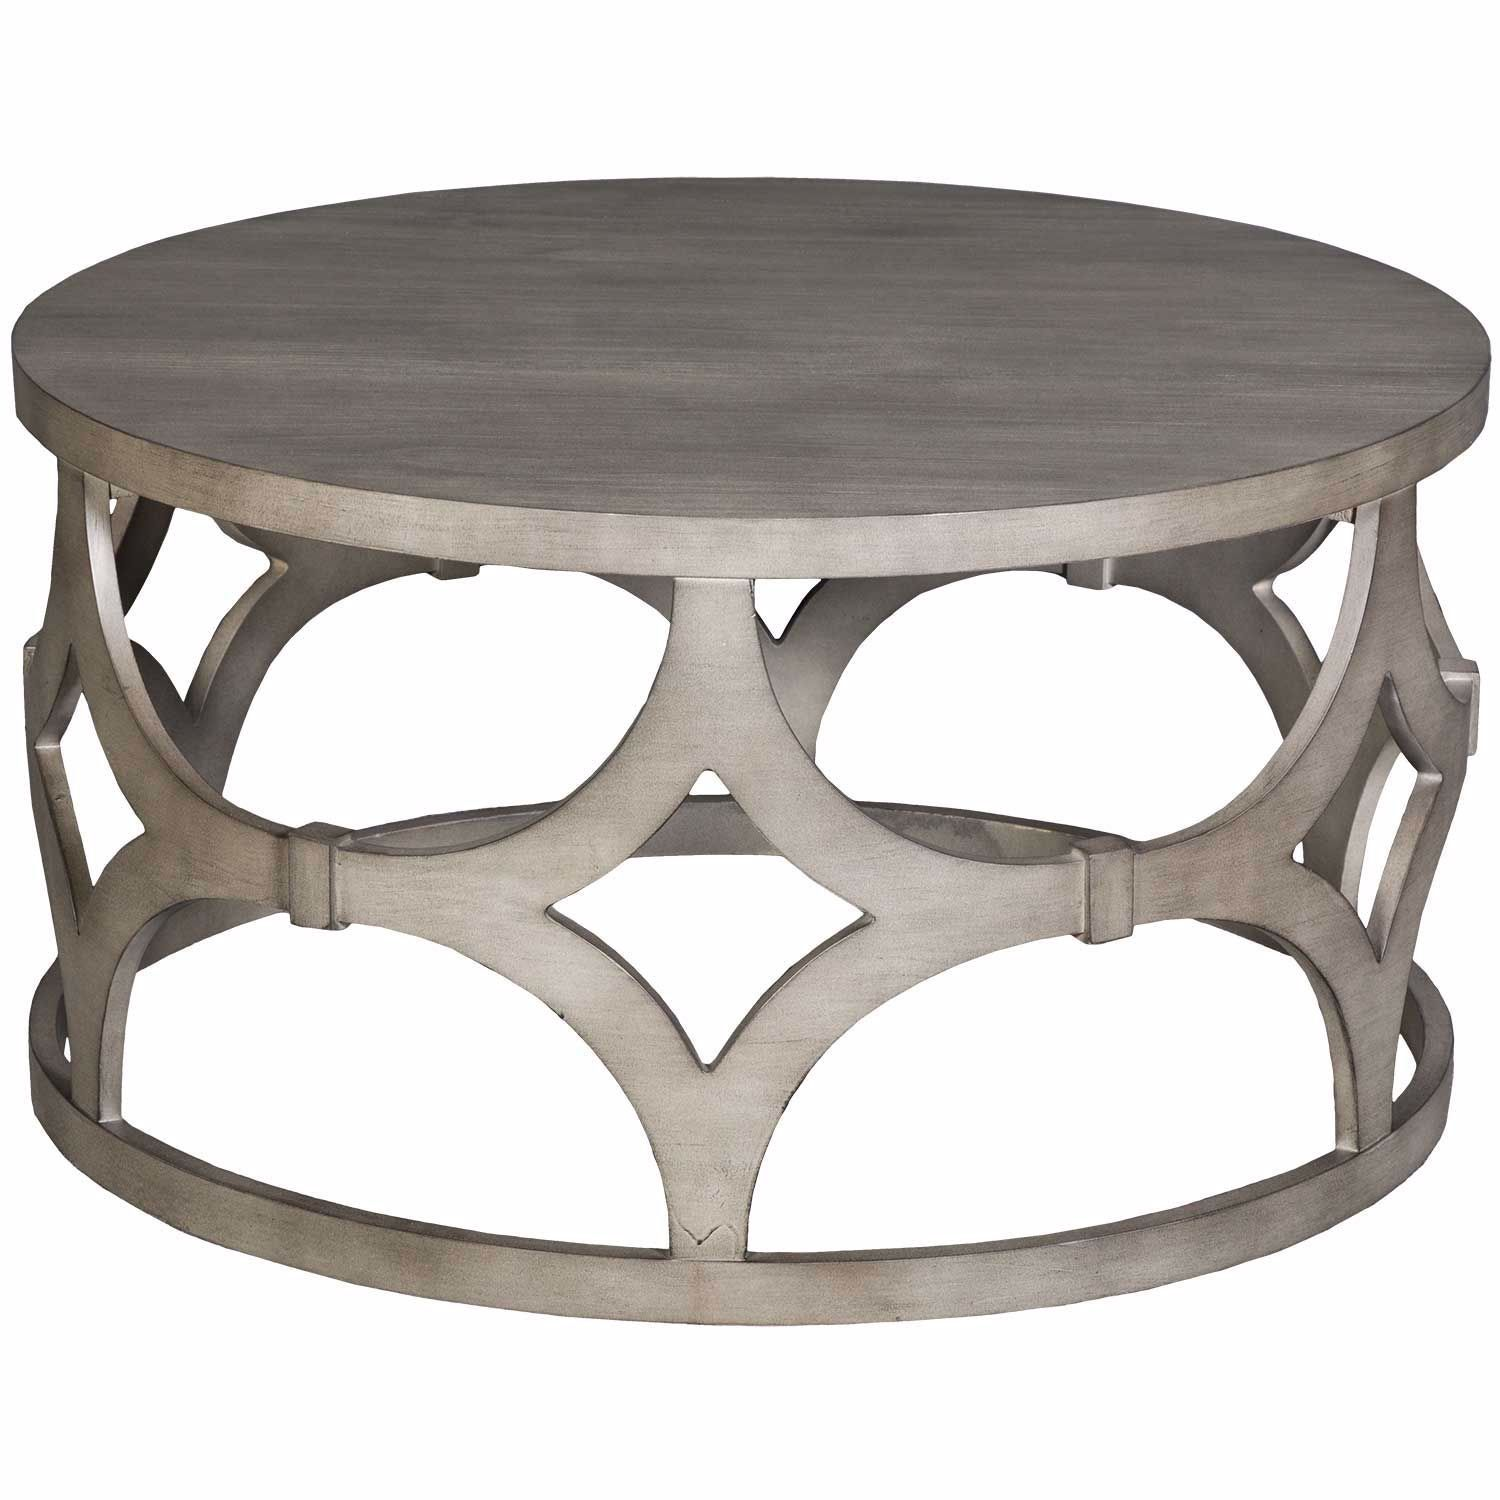 Pin By Coastal Haven Design Llc On 0 Living Room French Country Coffee Table Coffee Table Redo Decorating Coffee Tables [ 1500 x 1500 Pixel ]